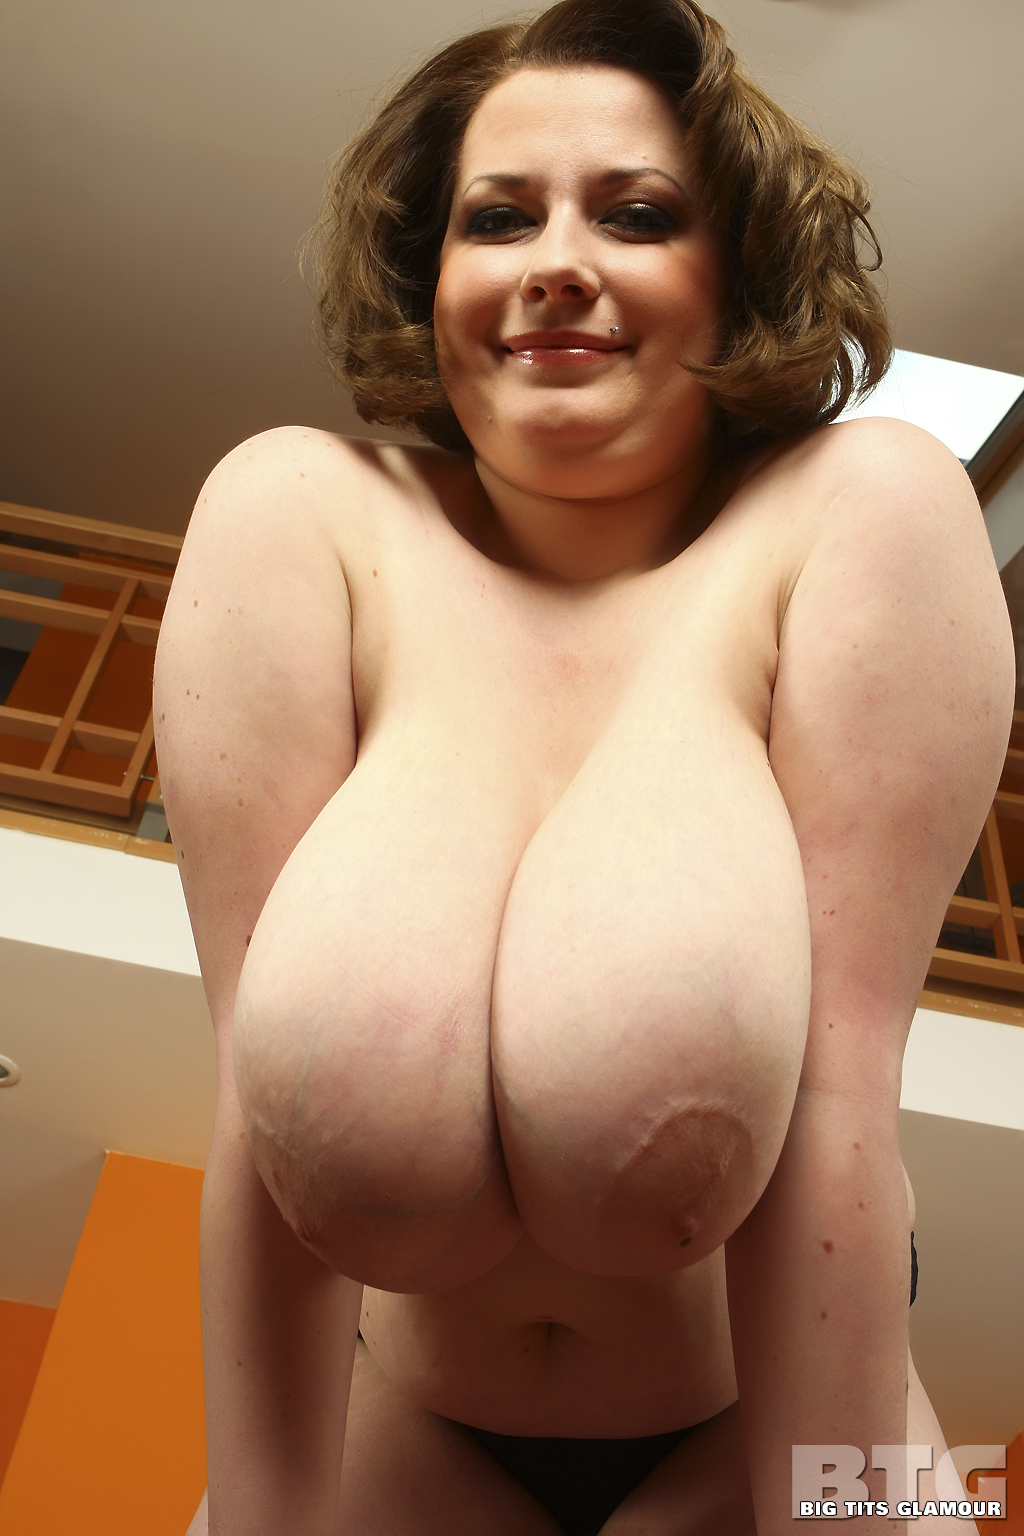 Look at big tits